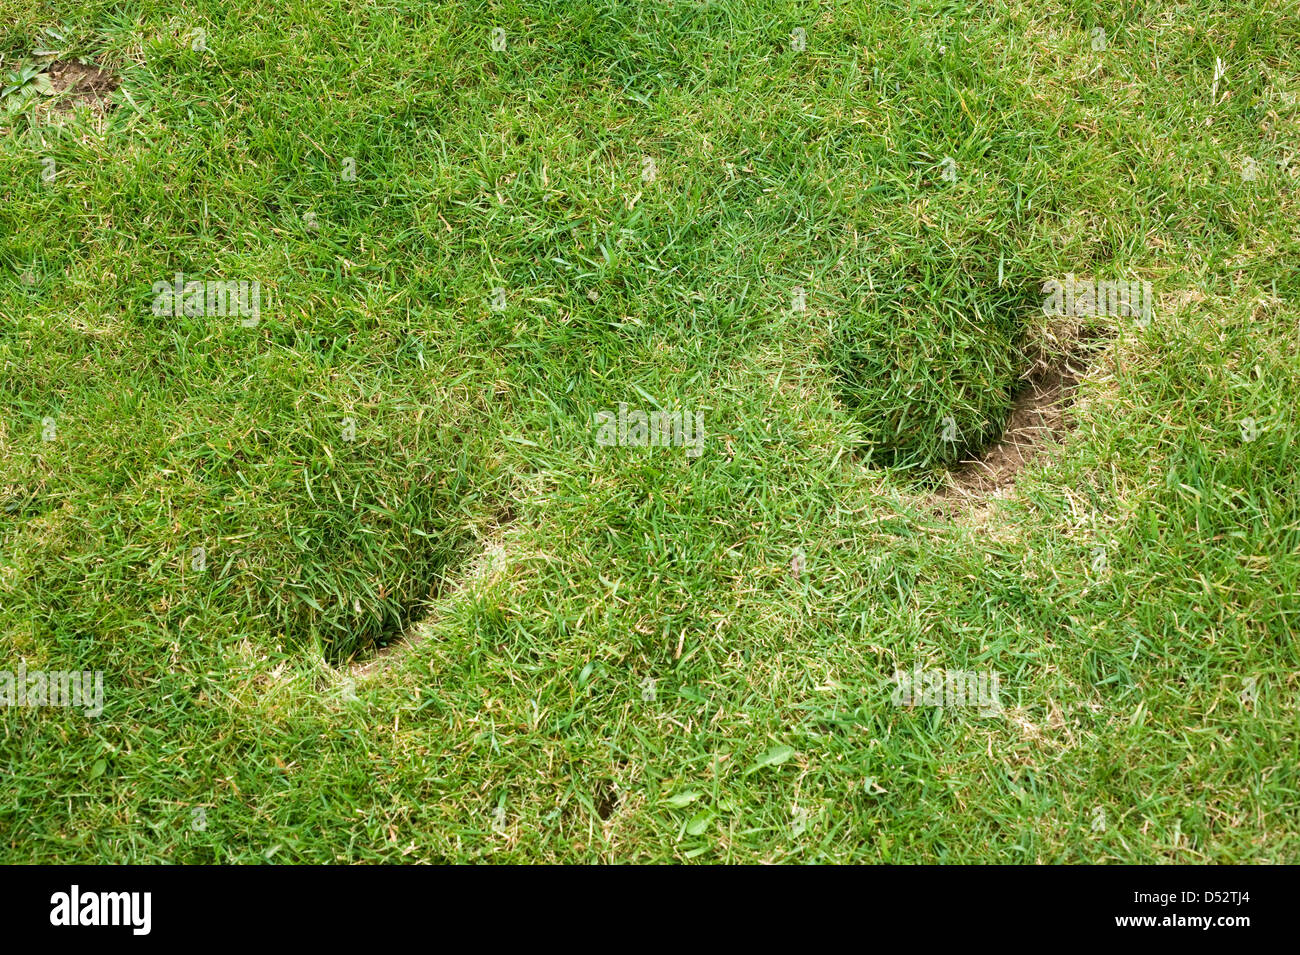 Horse hoof prints damage to a garden lawn - Stock Image